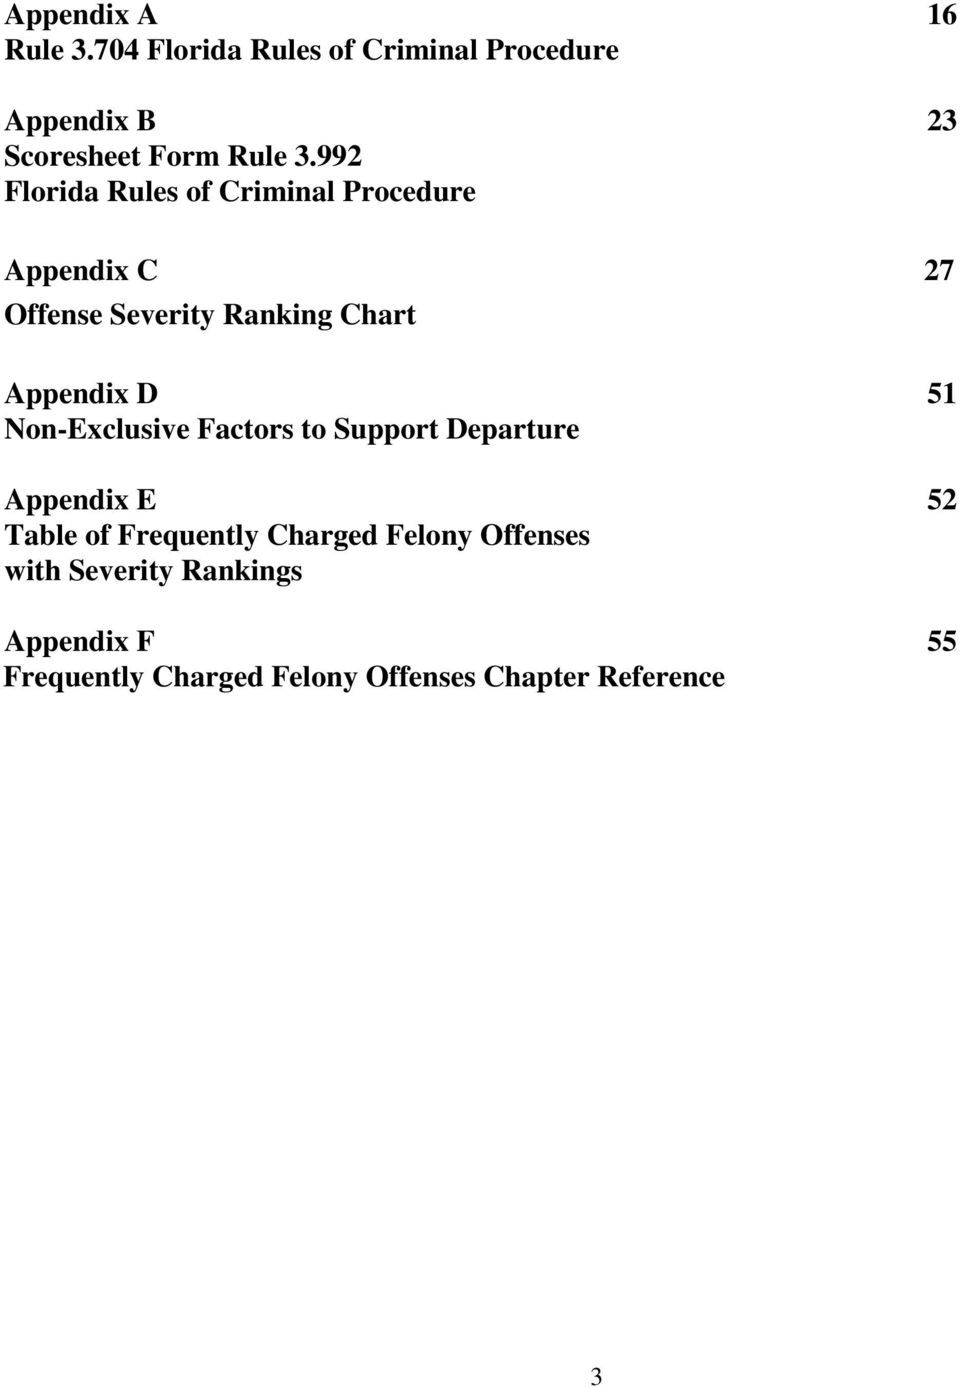 51 Non-Exclusive Factors to Support Departure Appendix E 52 Table of Frequently Charged Felony